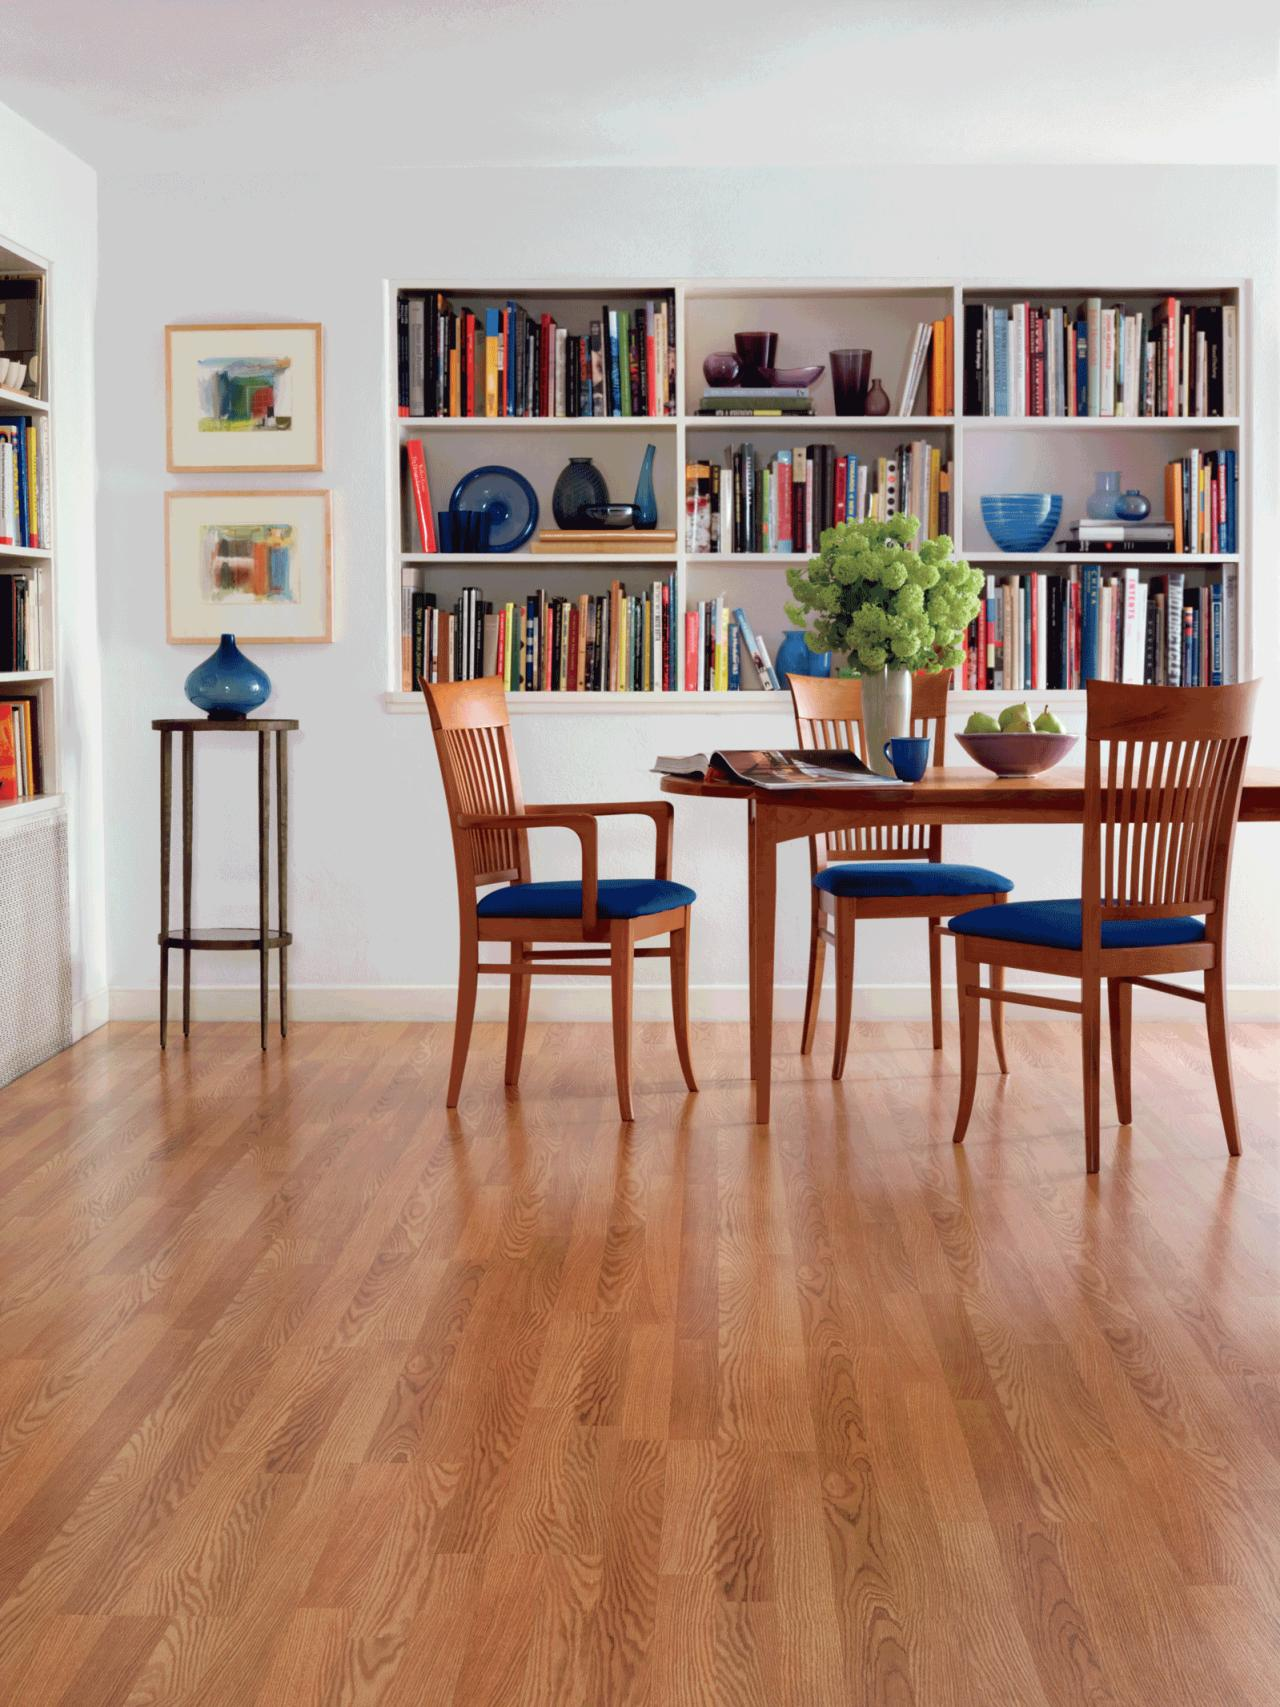 Best flooring option pictures 11 ideas for every room for Dining room flooring